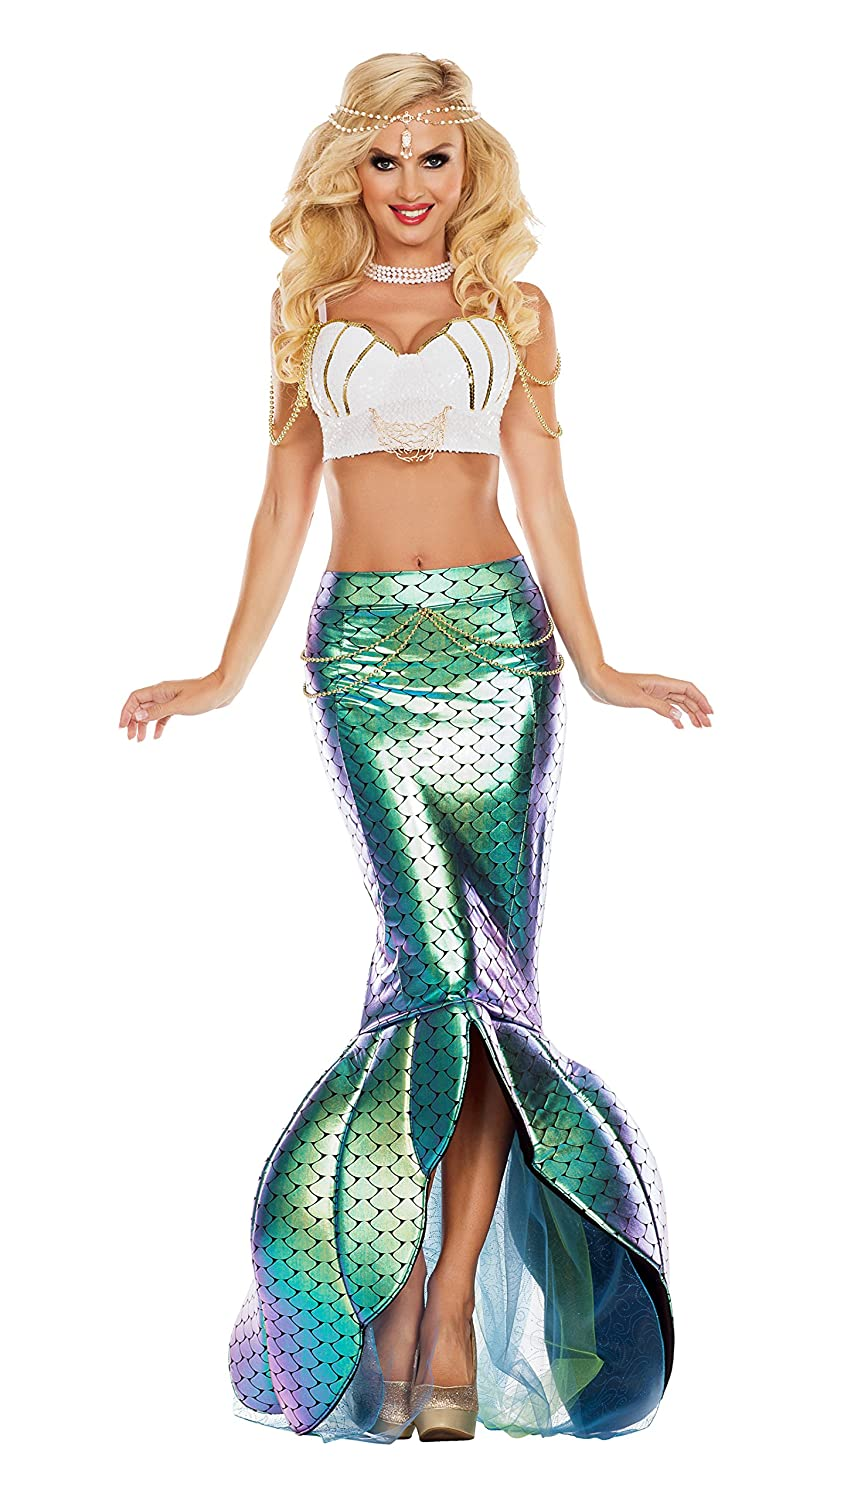 Women's Under The Sea 2-Piece Mermaid Costume - DeluxeAdultCostumes.com